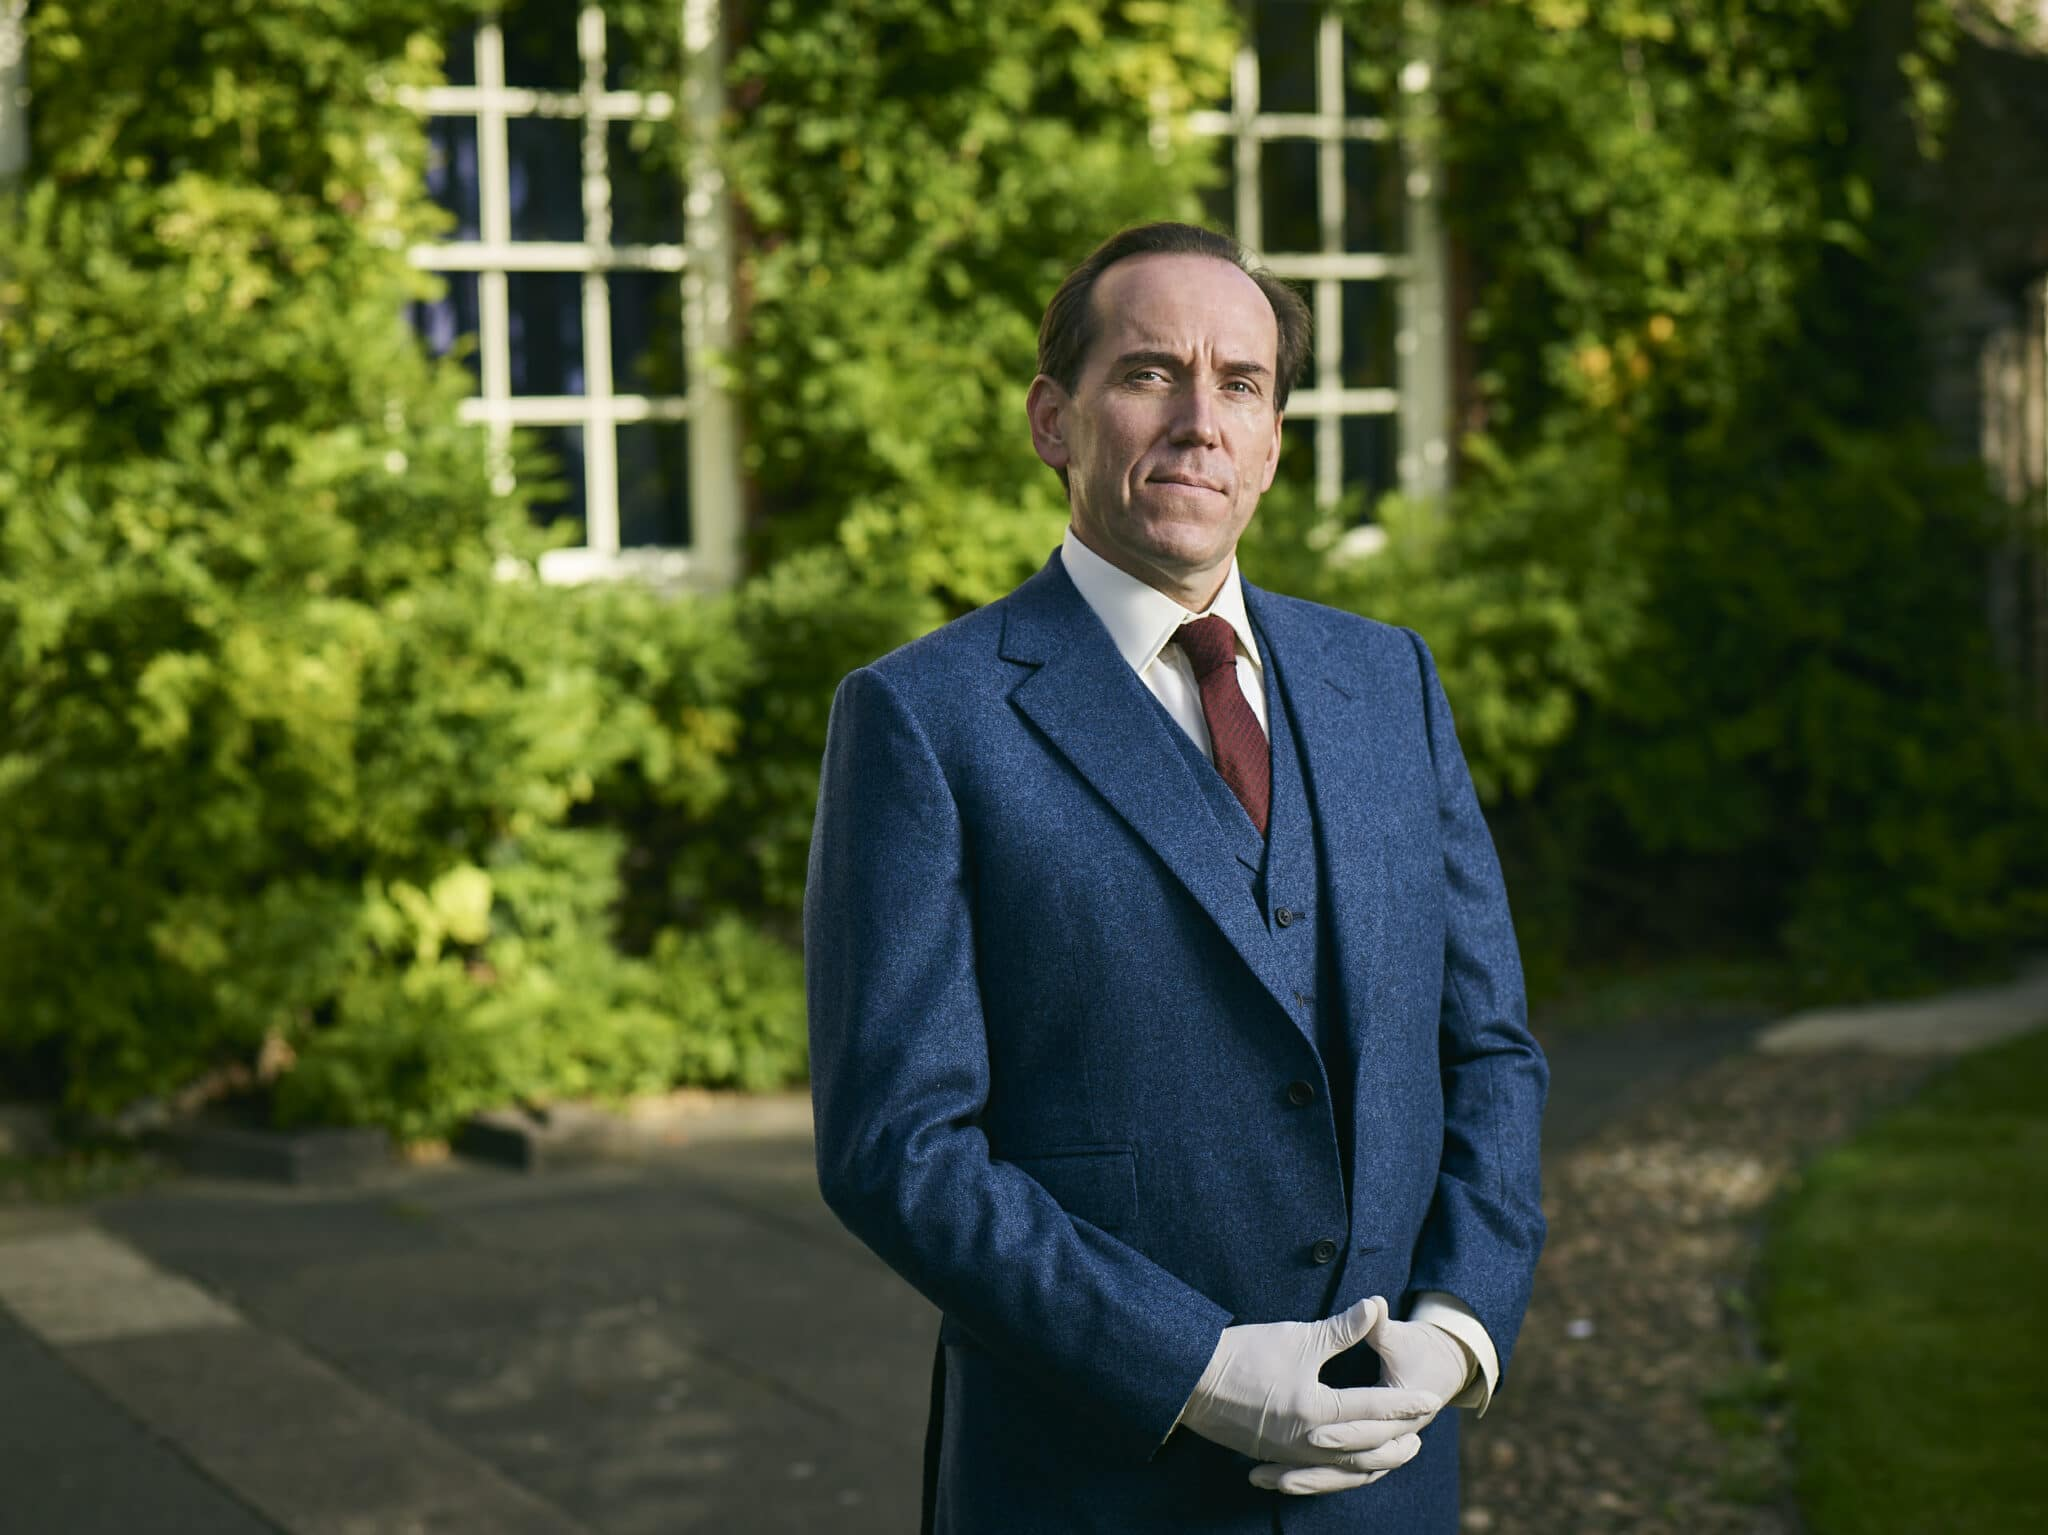 The Best British TV Shows on PBS Masterpiece Channel 37